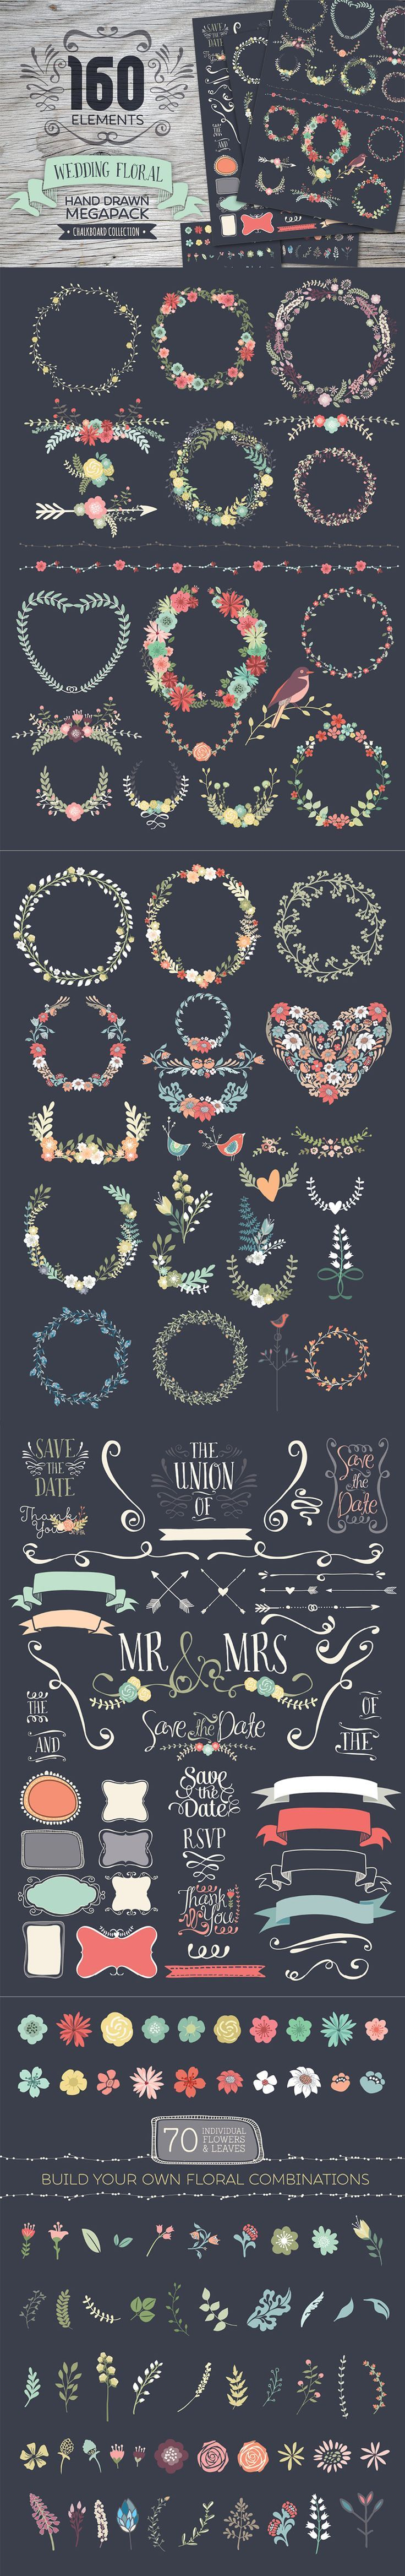 The Essential, Creative Design Arsenal (1000s of Best-Selling Resources) Just $29 - Chalkboard Floral Megapack